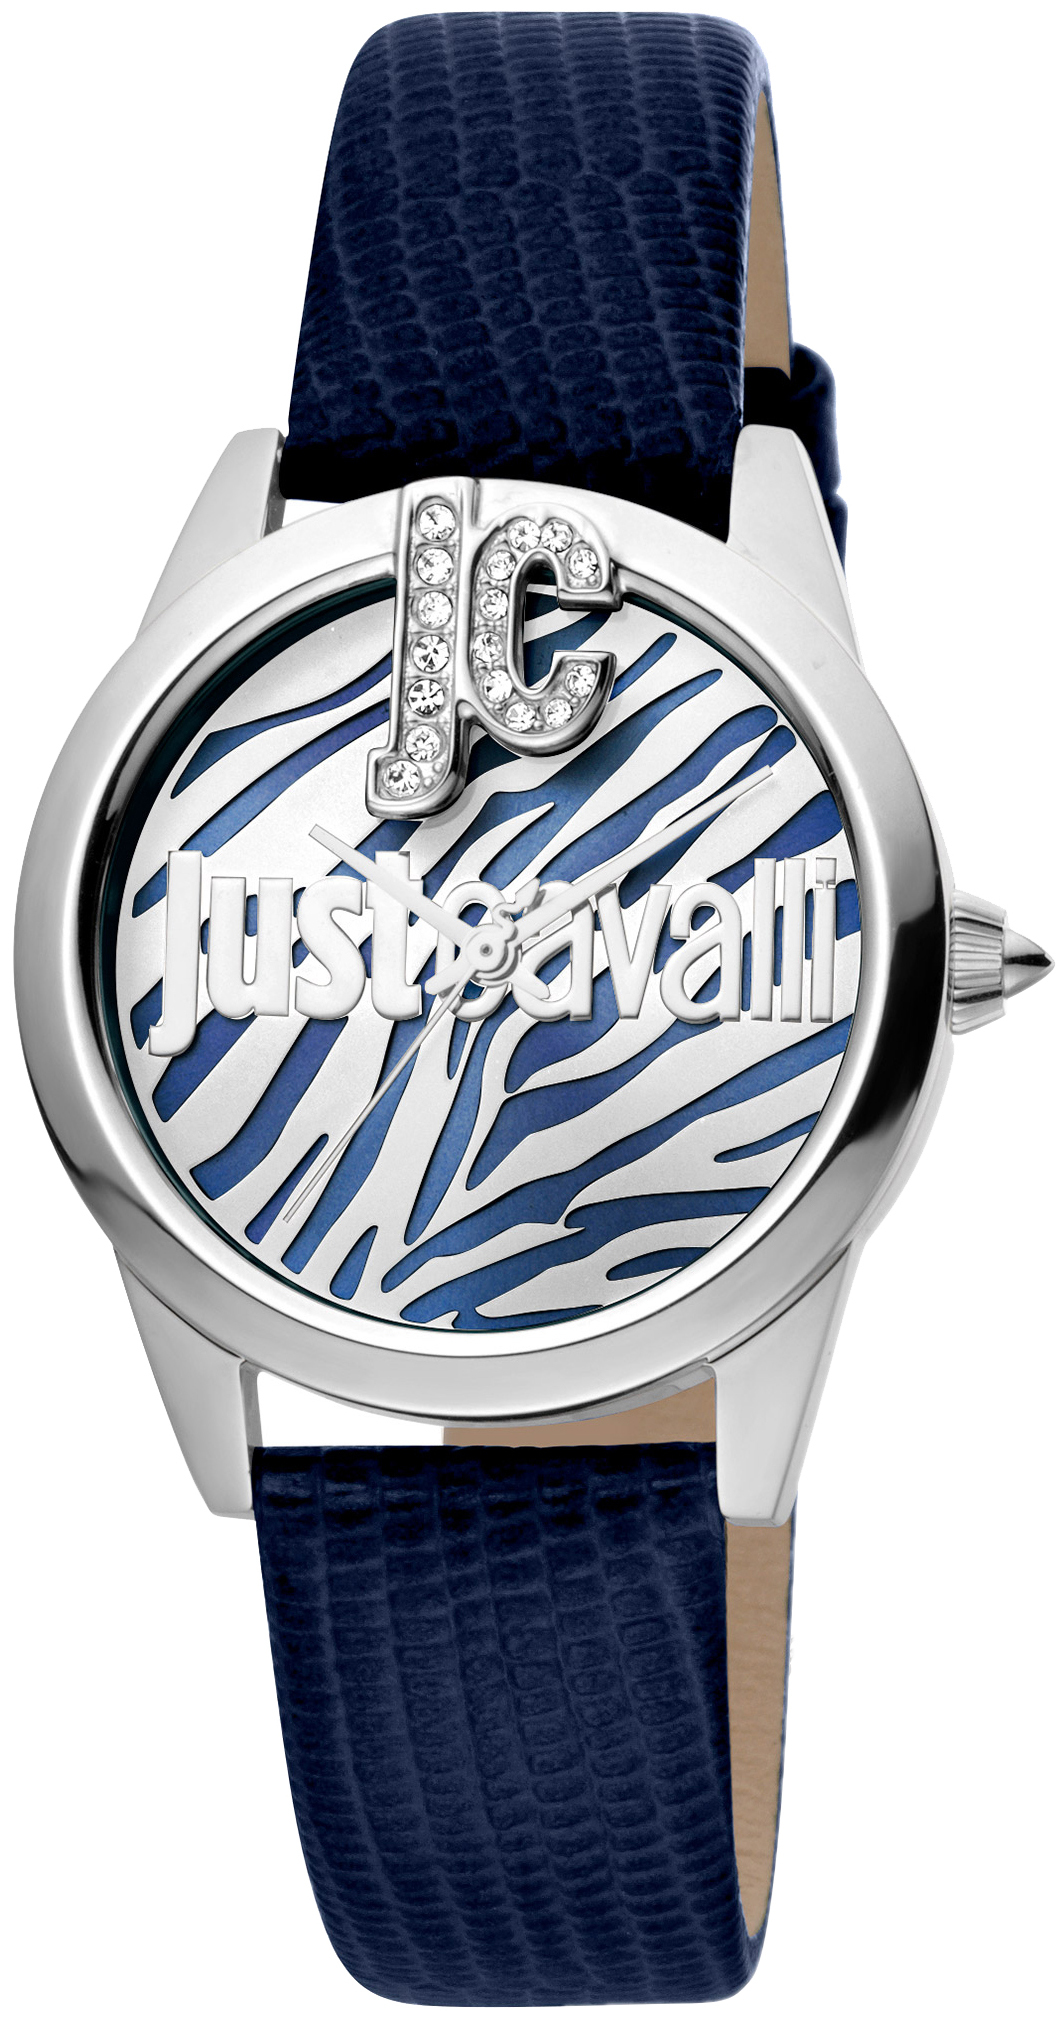 Just Cavalli 99999 Dameklokke JC1L099L0015 Flerfarget/Lær Ø32 mm - Just Cavalli